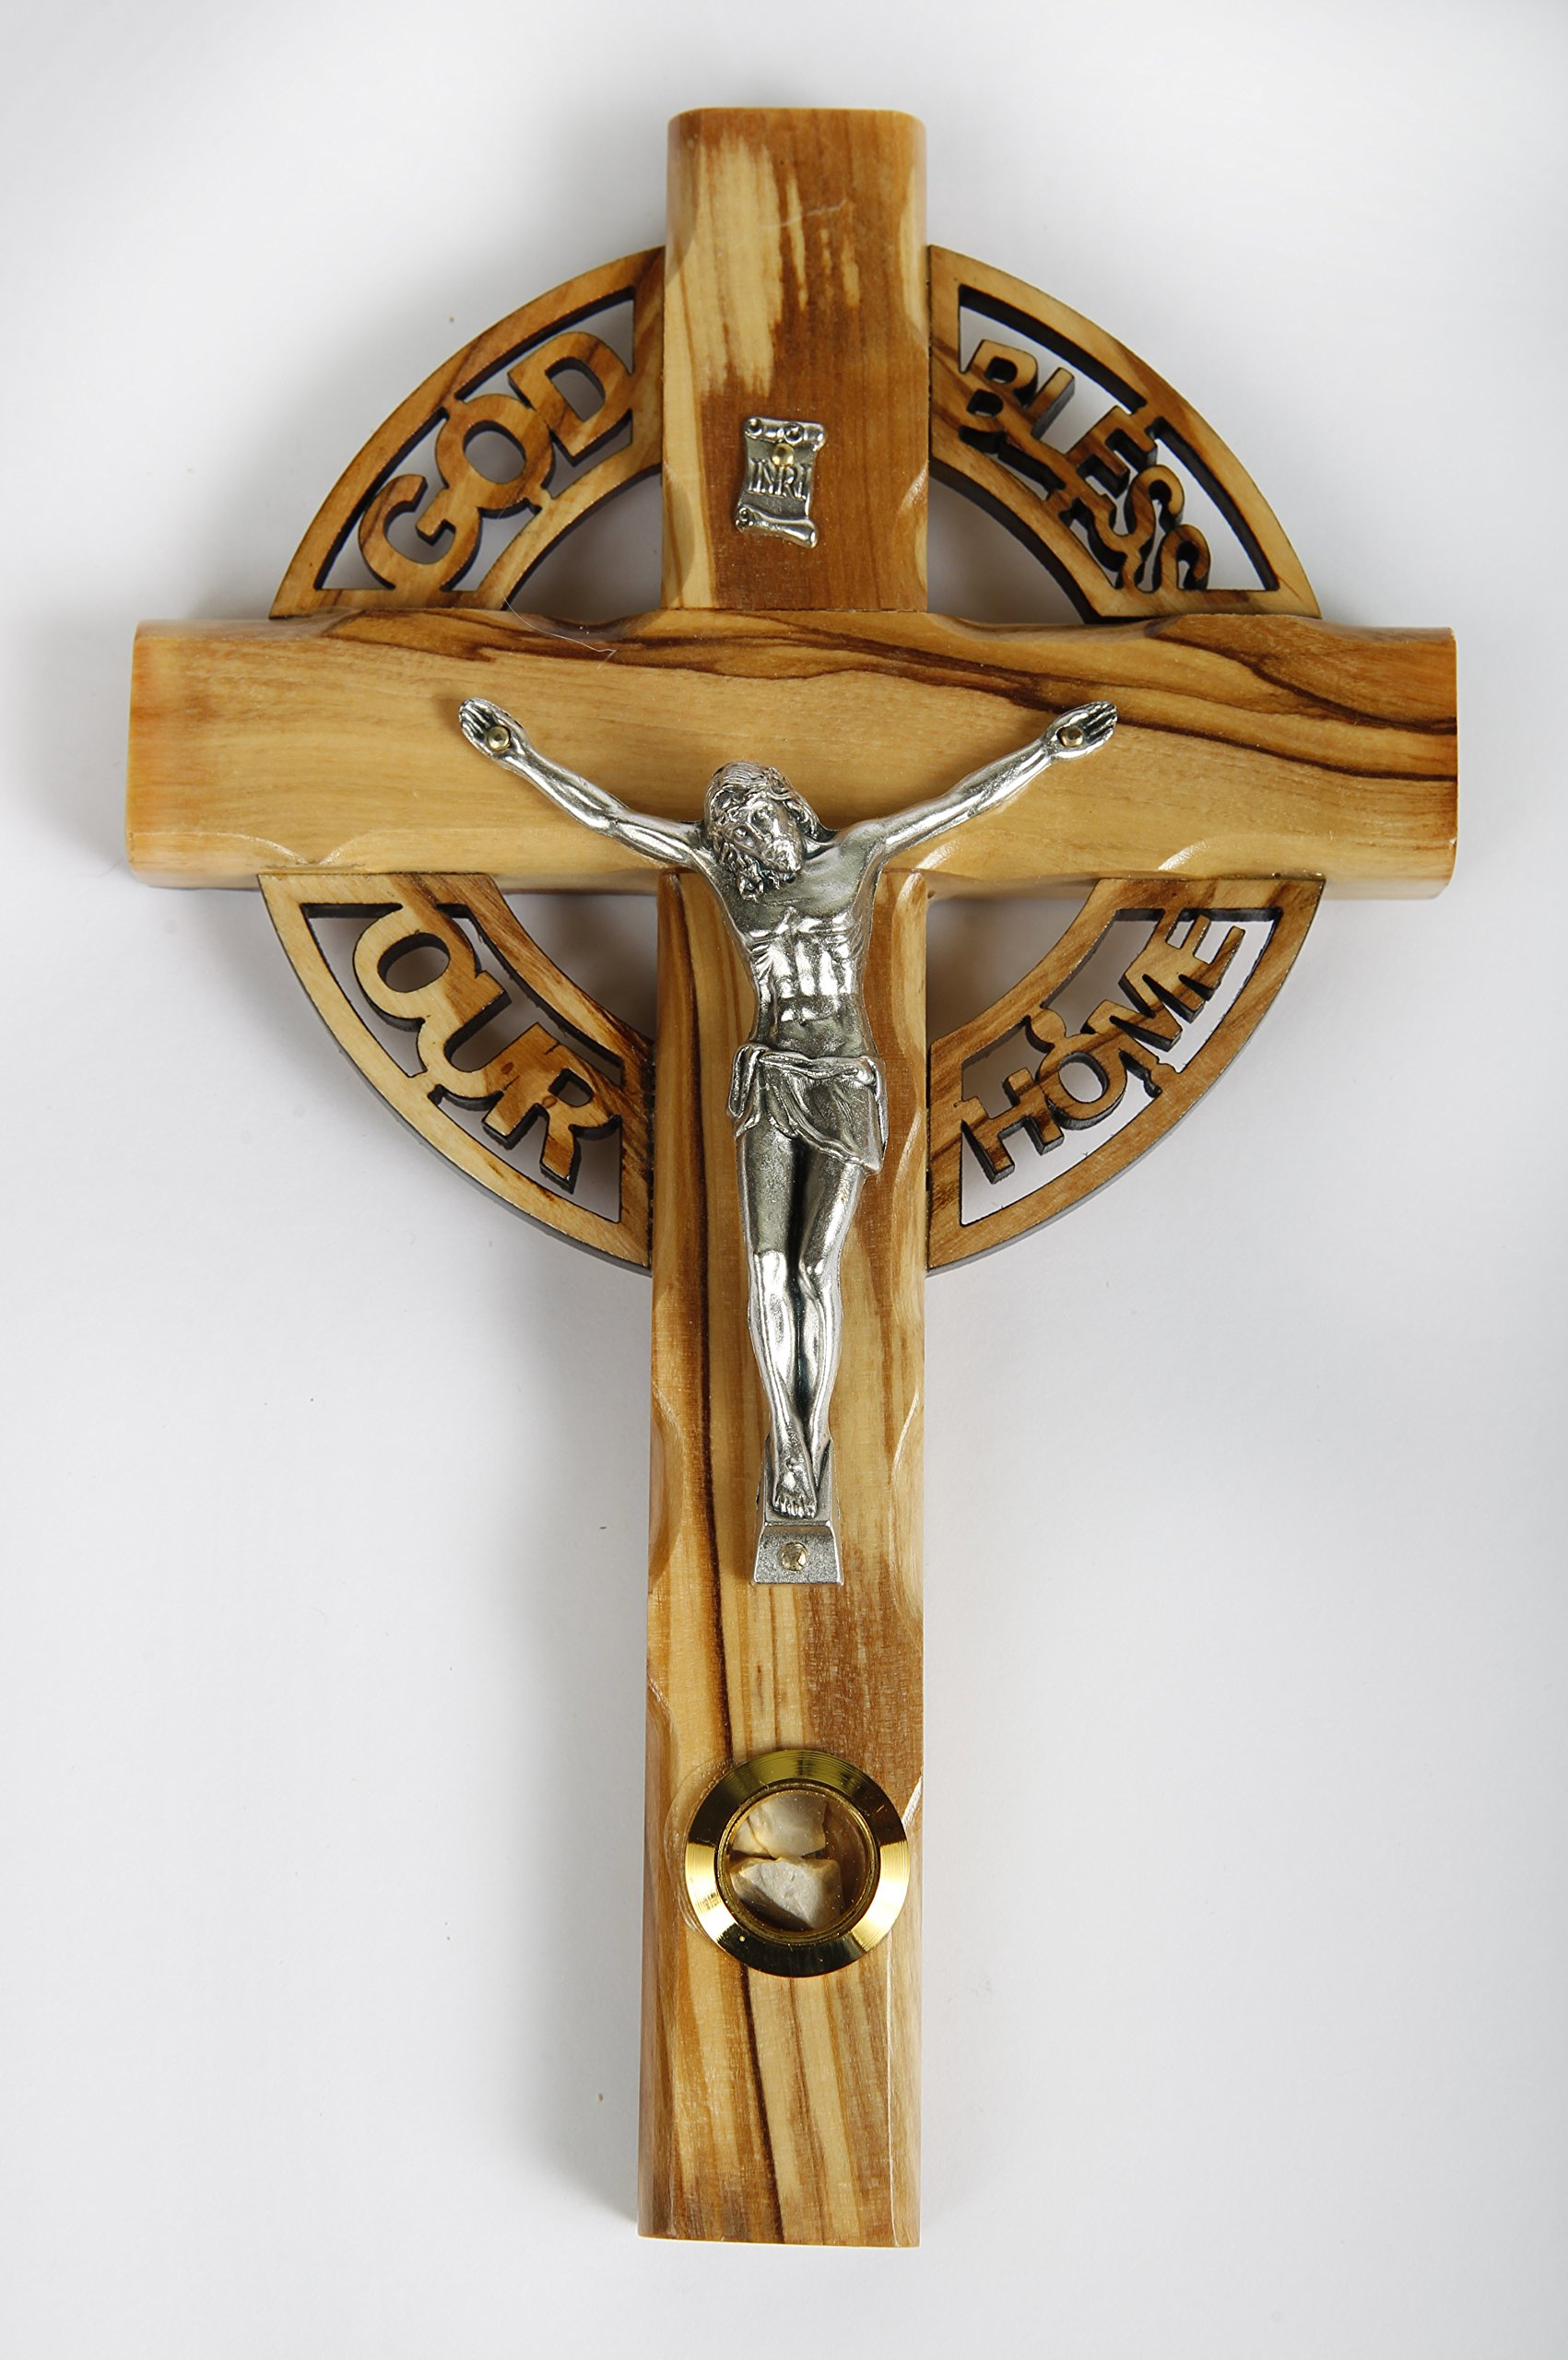 Olive Wood Crucifix / Wall Cross adorned with stones from Jerusalem and the words ''GOD BLESS OUR HOME'' Hand Craftedi n Bethlehem An Ideal Religious Gift for Christmas or any other Christian Holiday